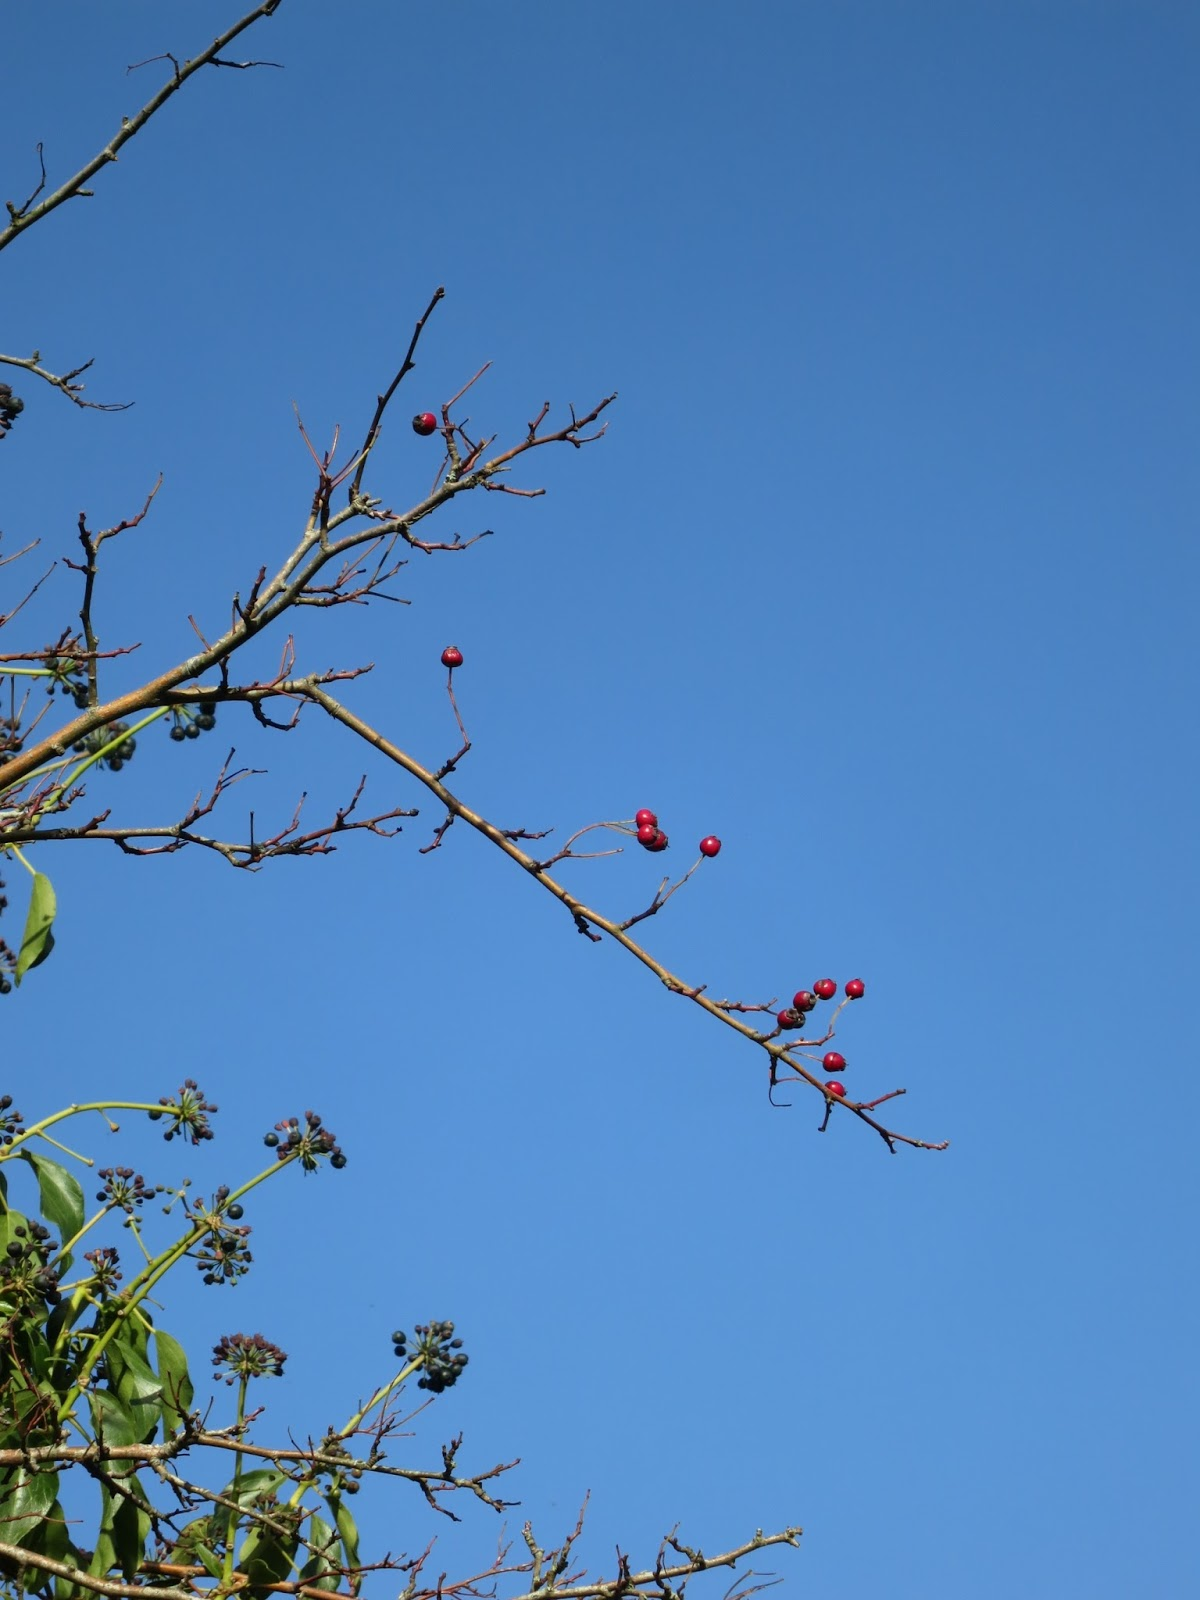 Haws and ivy berries against blue sky.